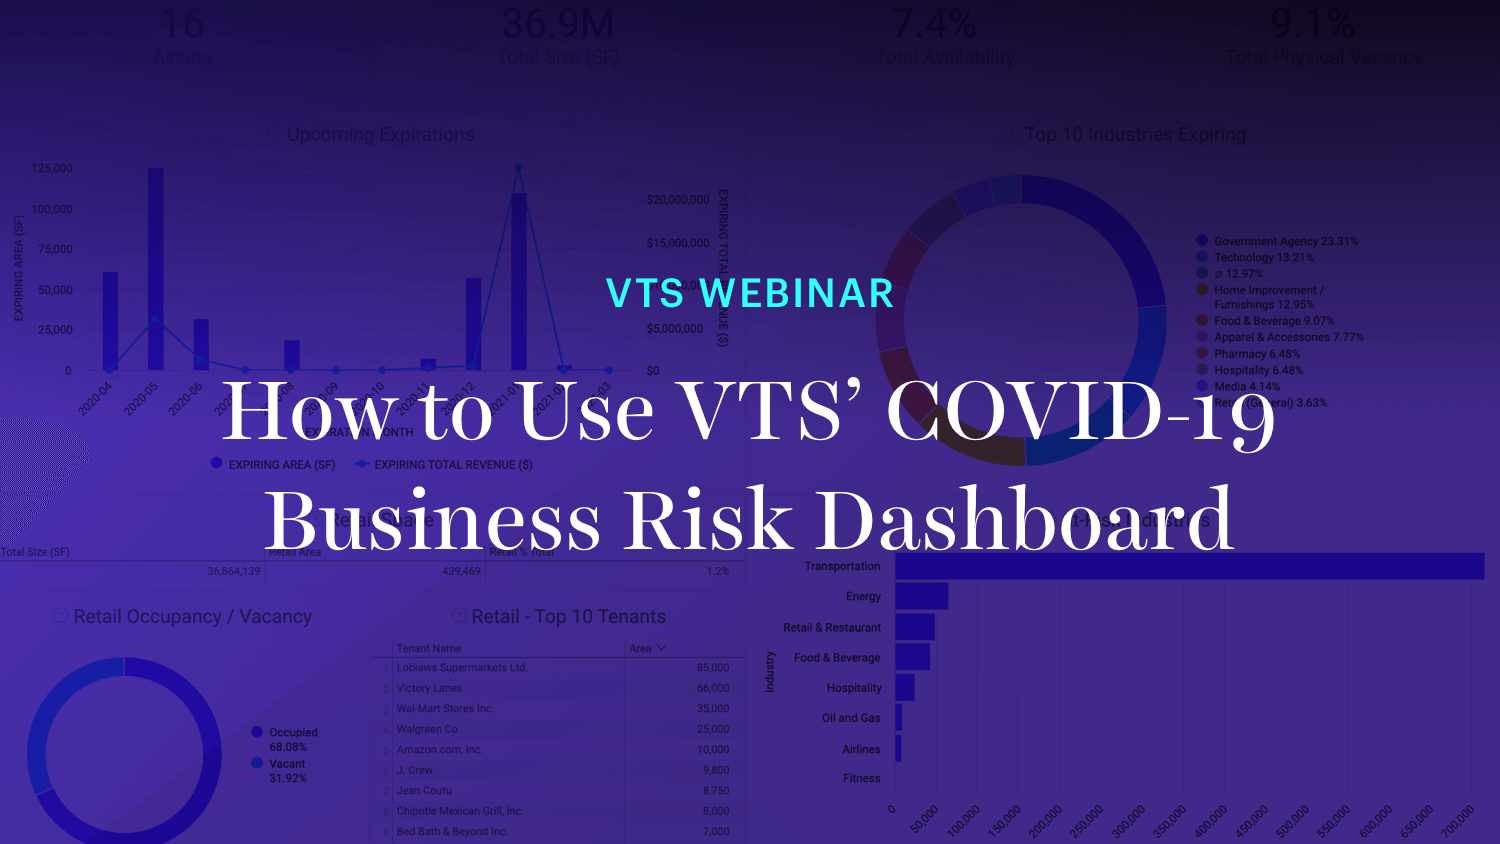 How to Use VTS' COVID-19 Business Risk Dashboard